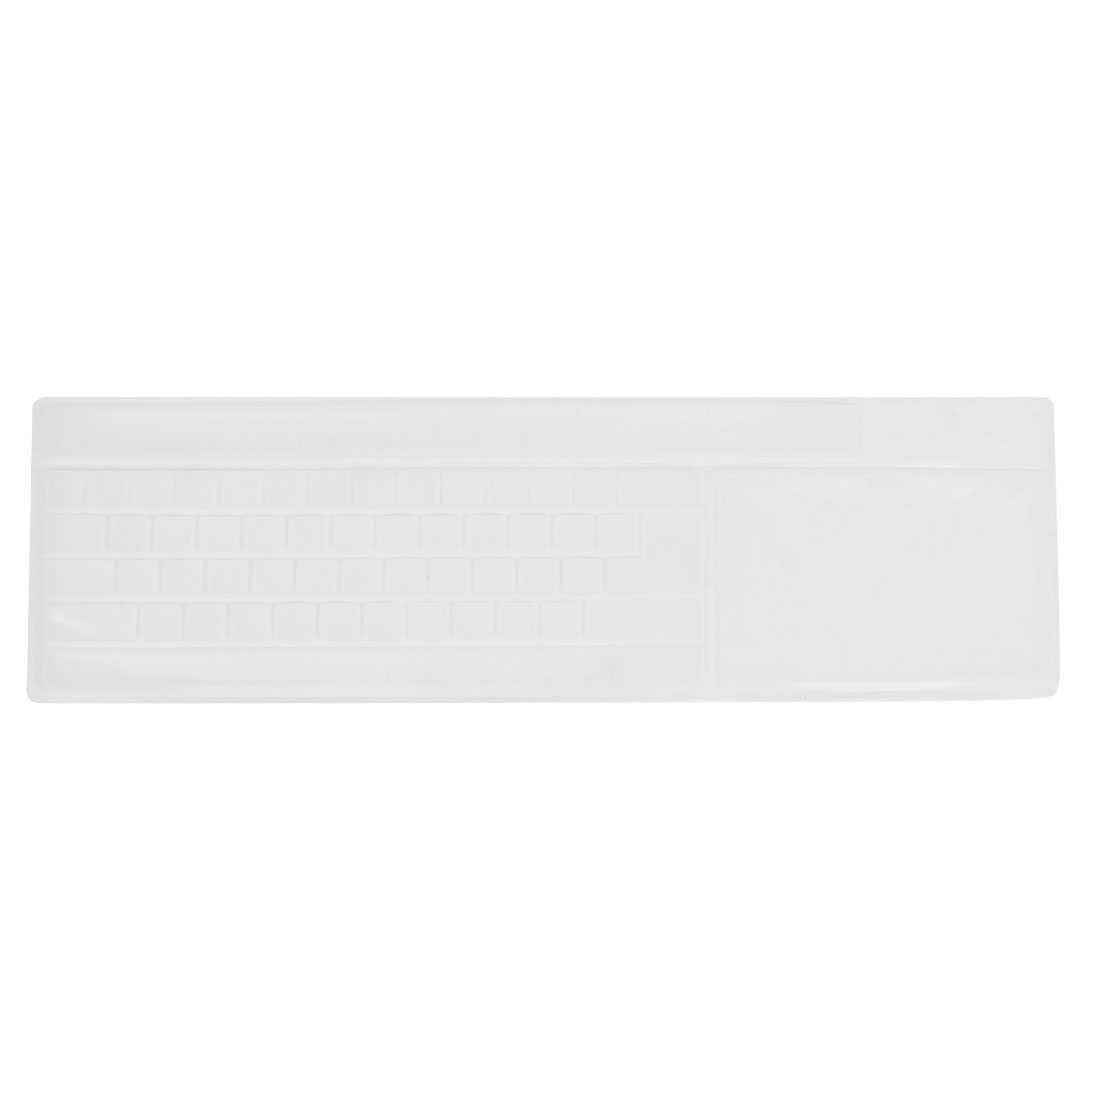 Solf Silicone Keyboard Protective Film Cover White for Desktop Computer